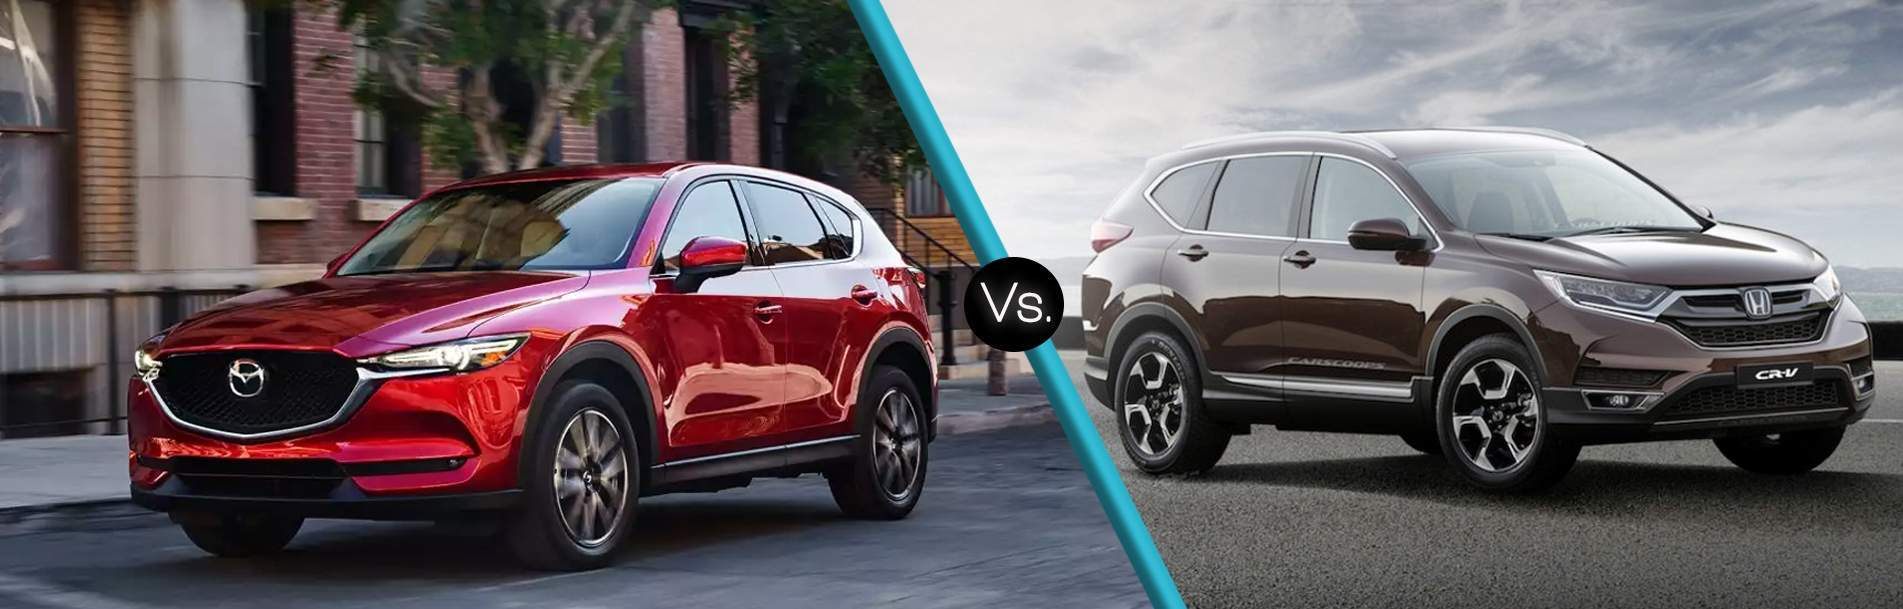 2017 Mazda CX 5 Vs 2017 Honda CRV